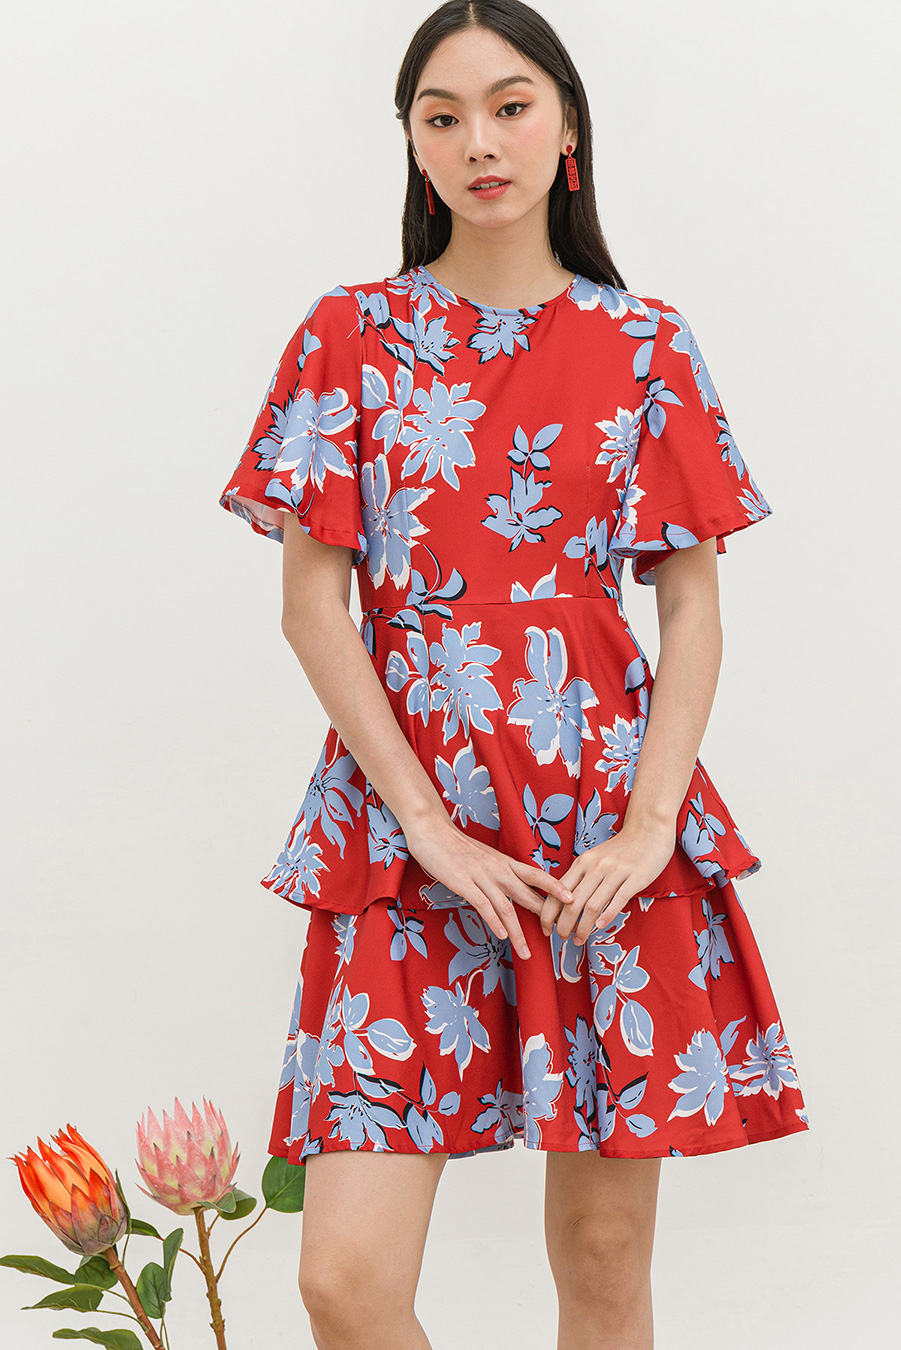 *SALE* AGATHE DRESS - ORNELLA [BY MODPARADE]